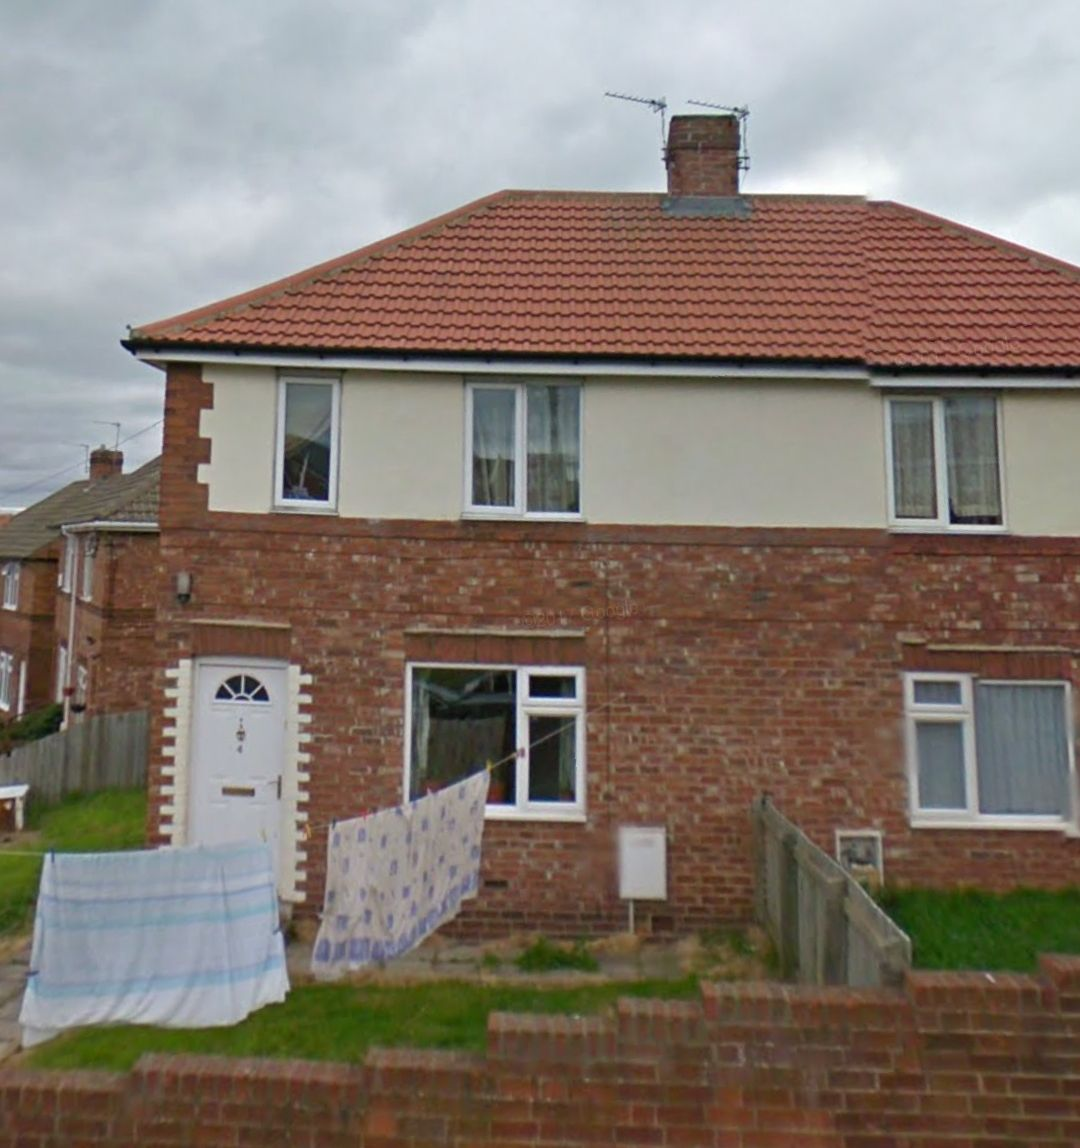 3 bed Semi-Detached House for rent in Sacriston. From Fairs Estates - Fenham